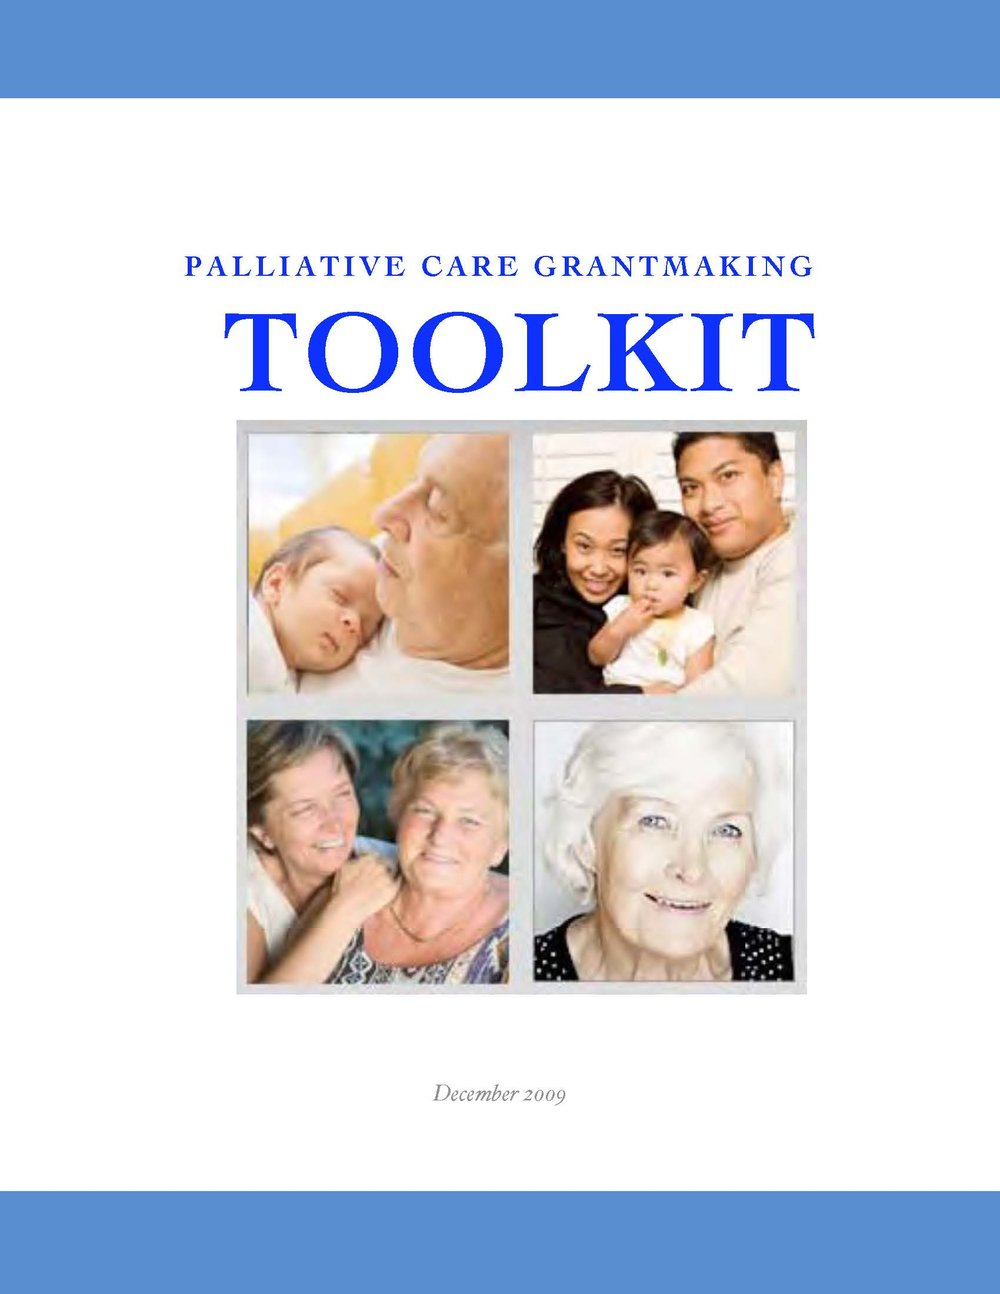 Palliative Care Grantmaking Toolkit_Page_01.jpg